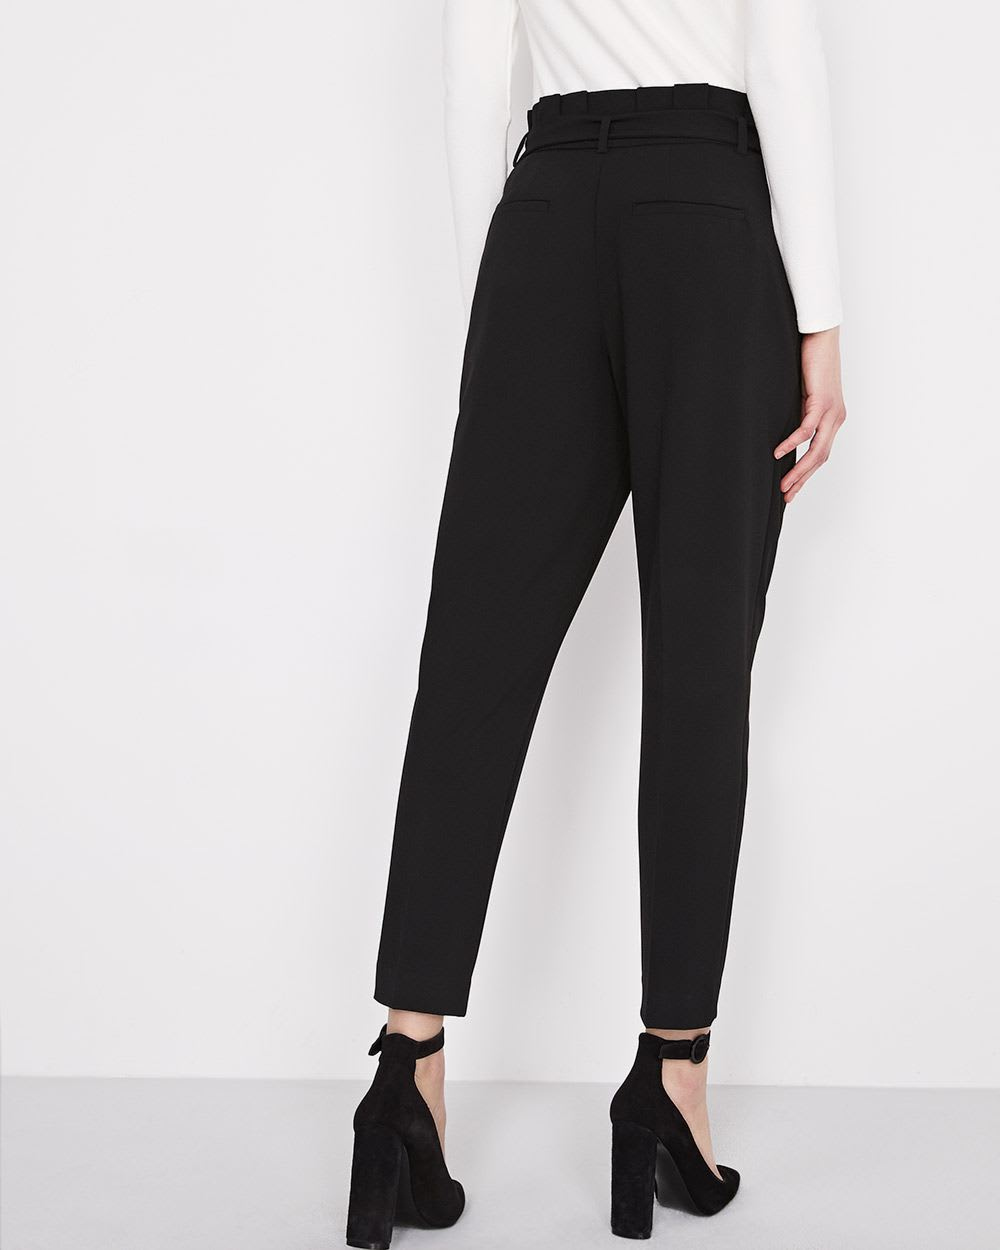 Black Everyday Stretch Paperbag Pant